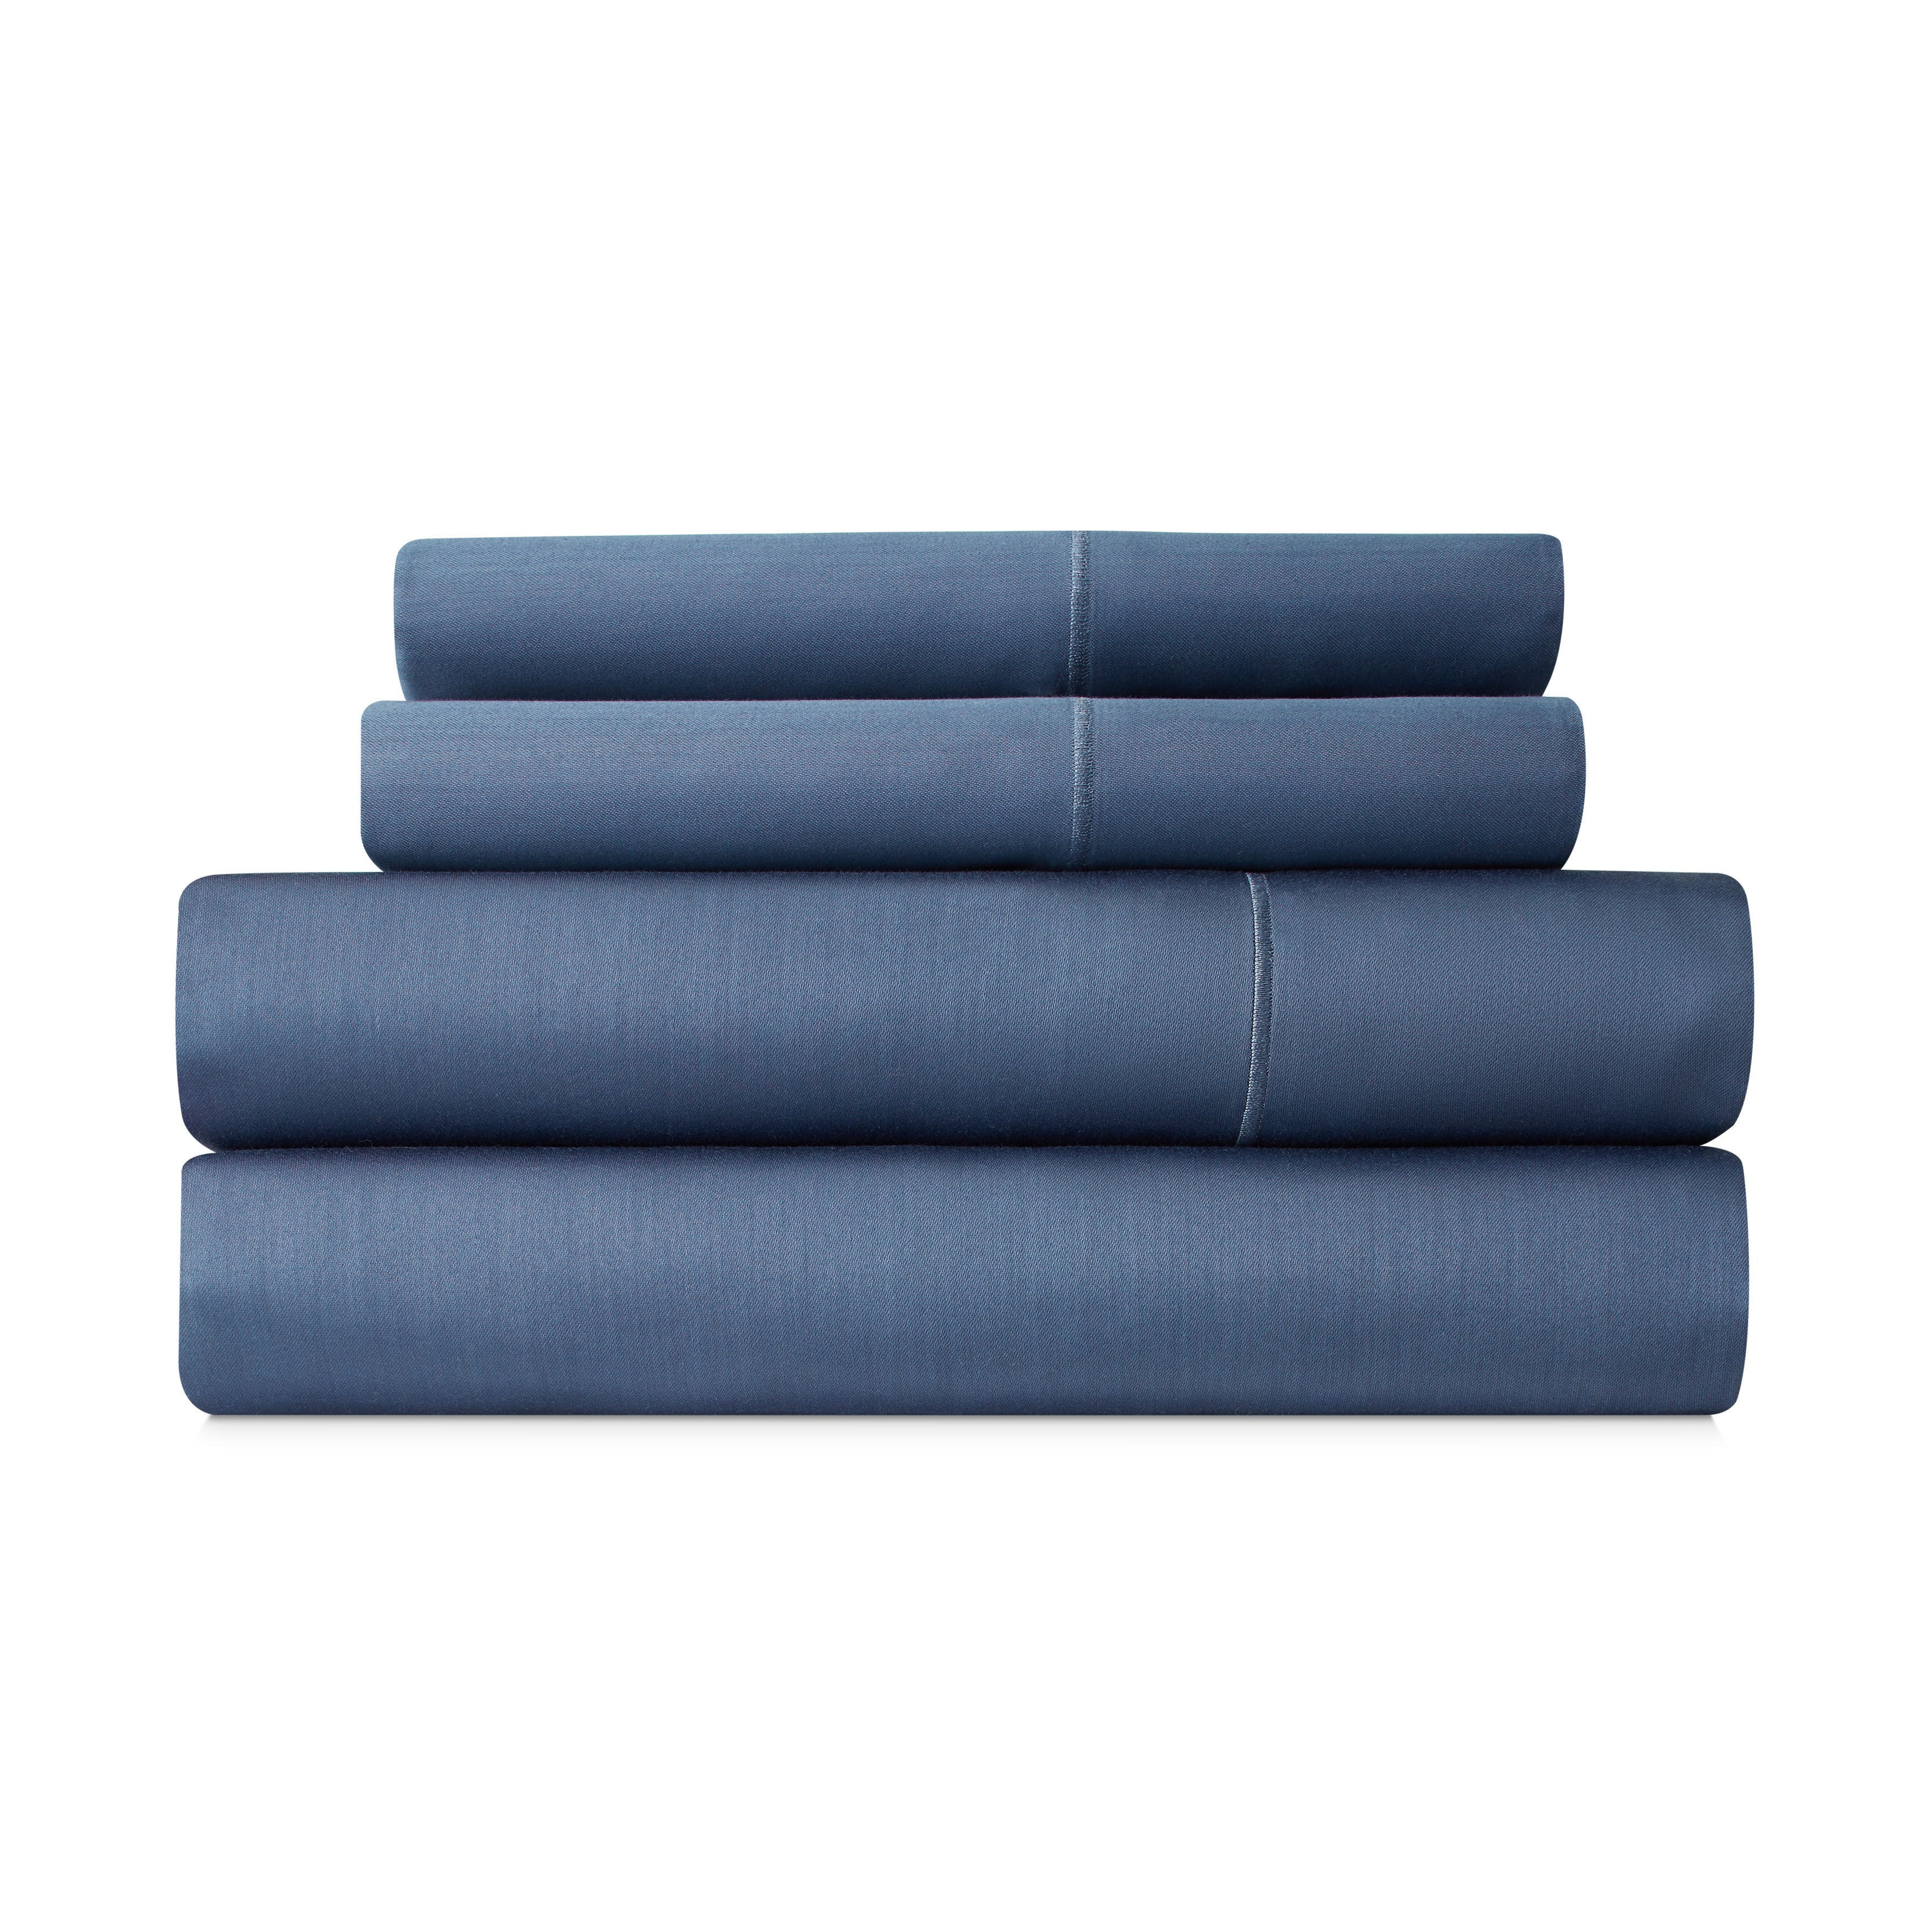 Wrinkle Free 1000 TC Cotton Blend Solid Easy Care Sheets 55/% Cotton 45/%Polyester